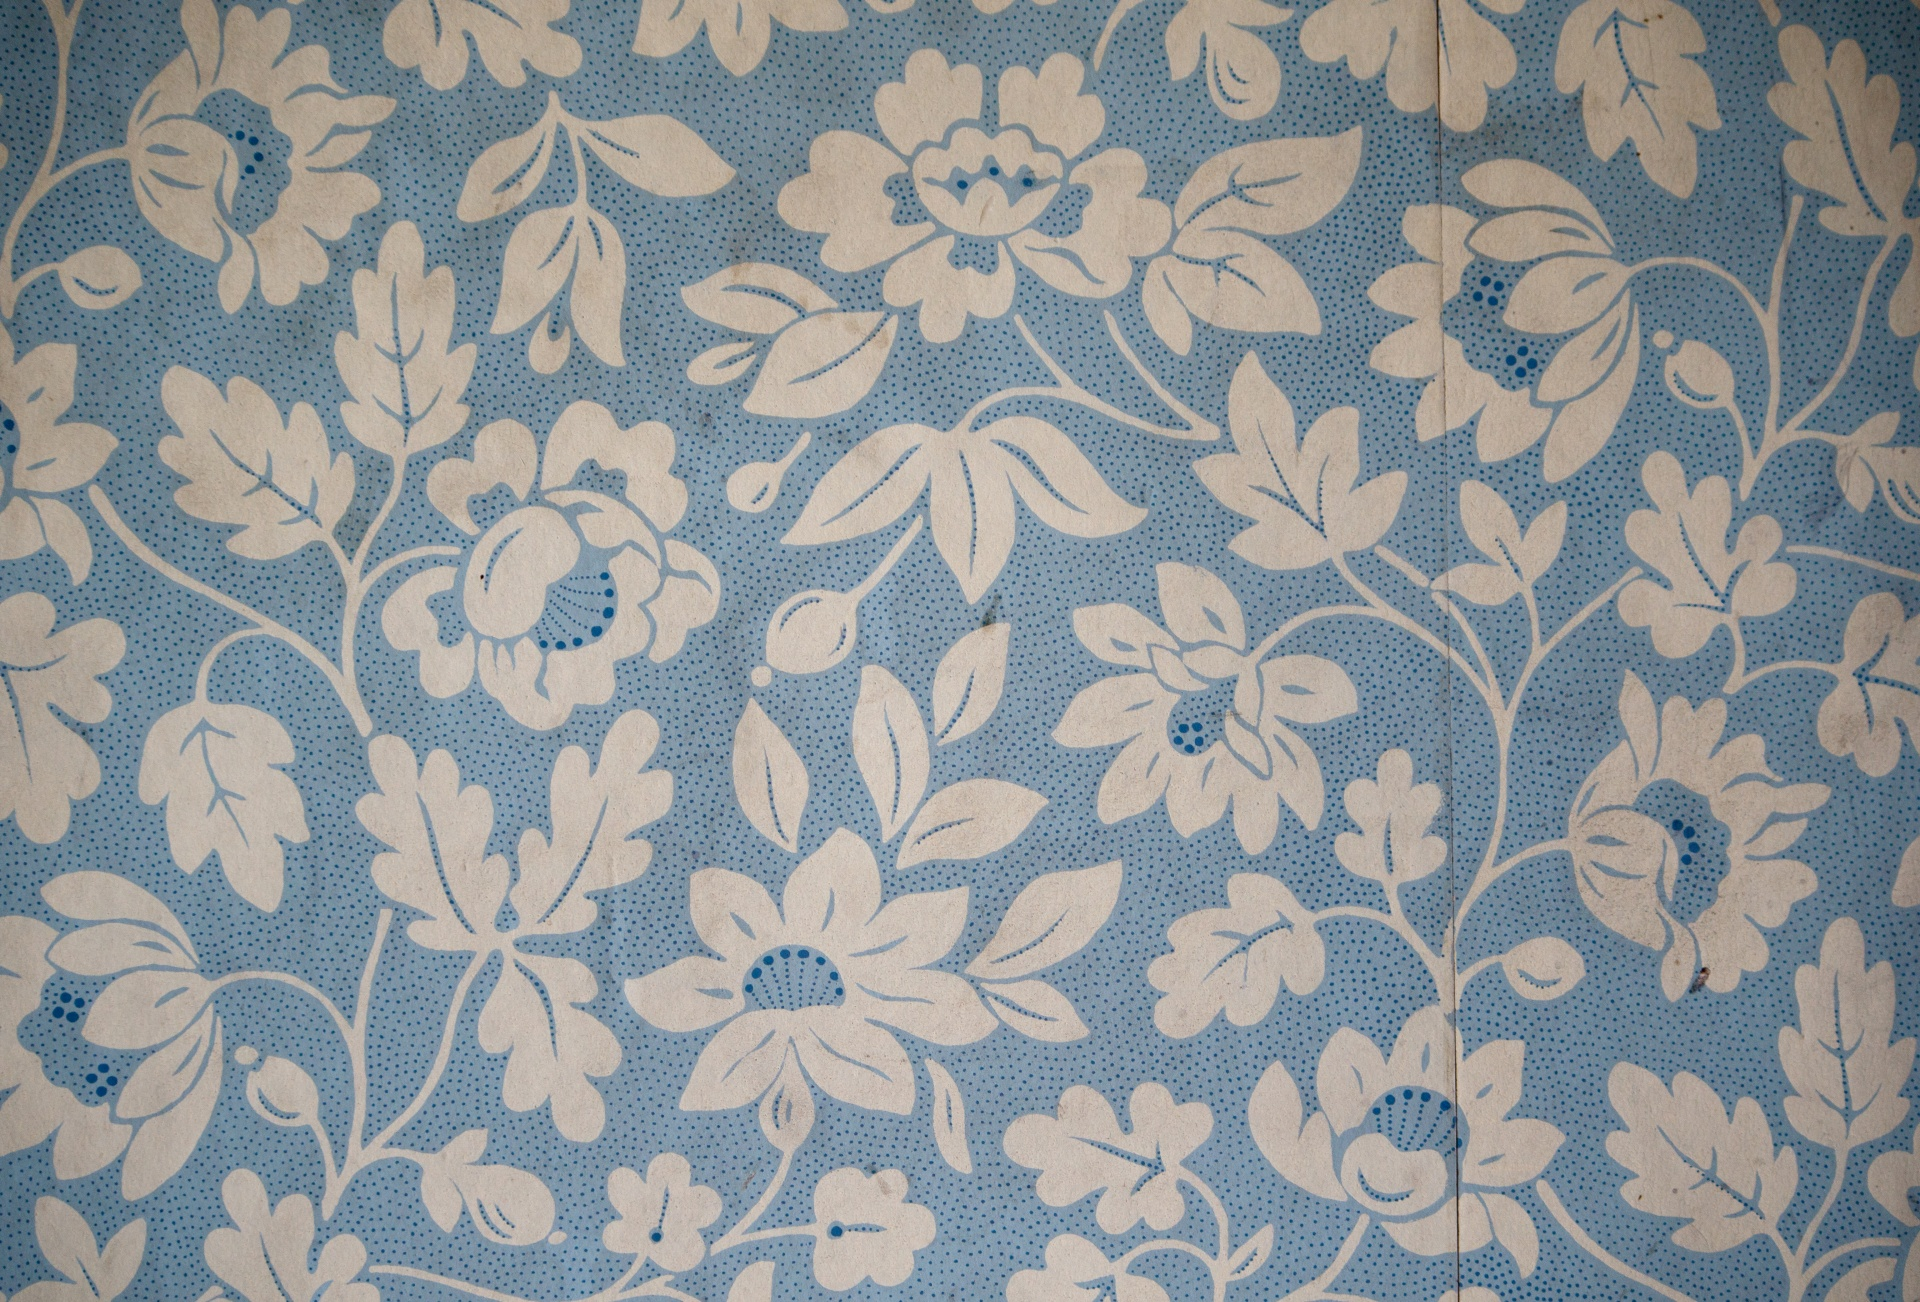 Vintage Floral Wallpaper Paper Background Free Image From